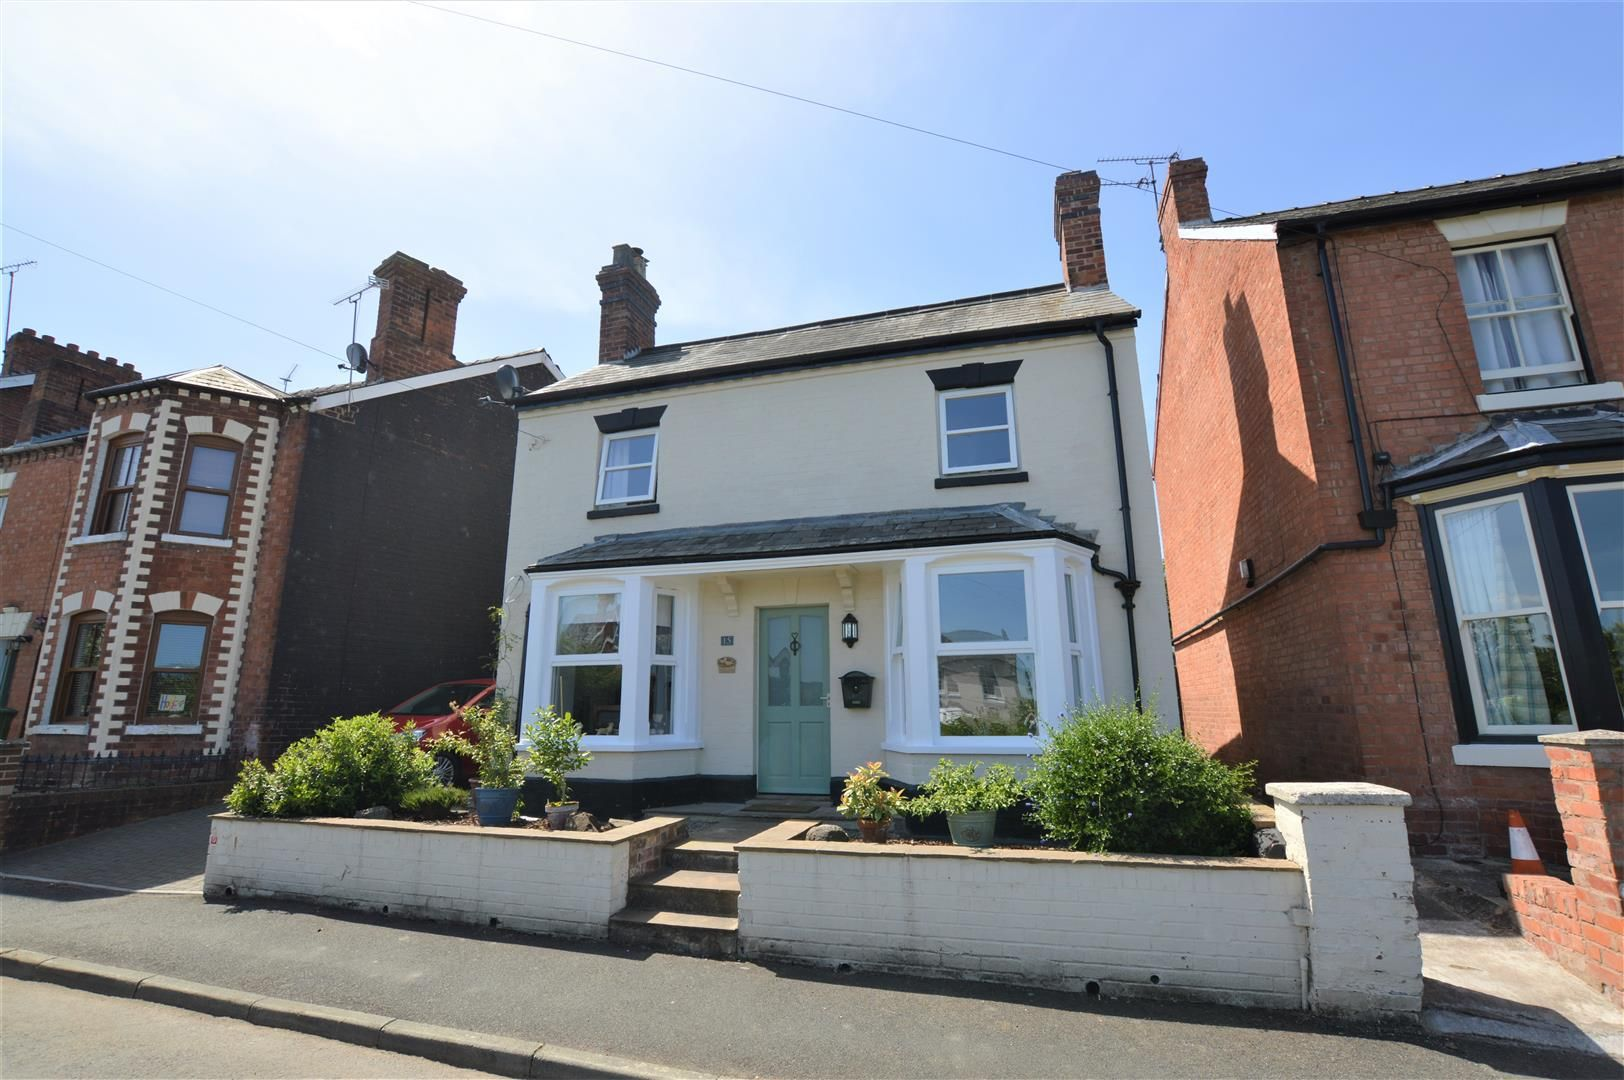 2 bed town house for sale in Leominster, HR6